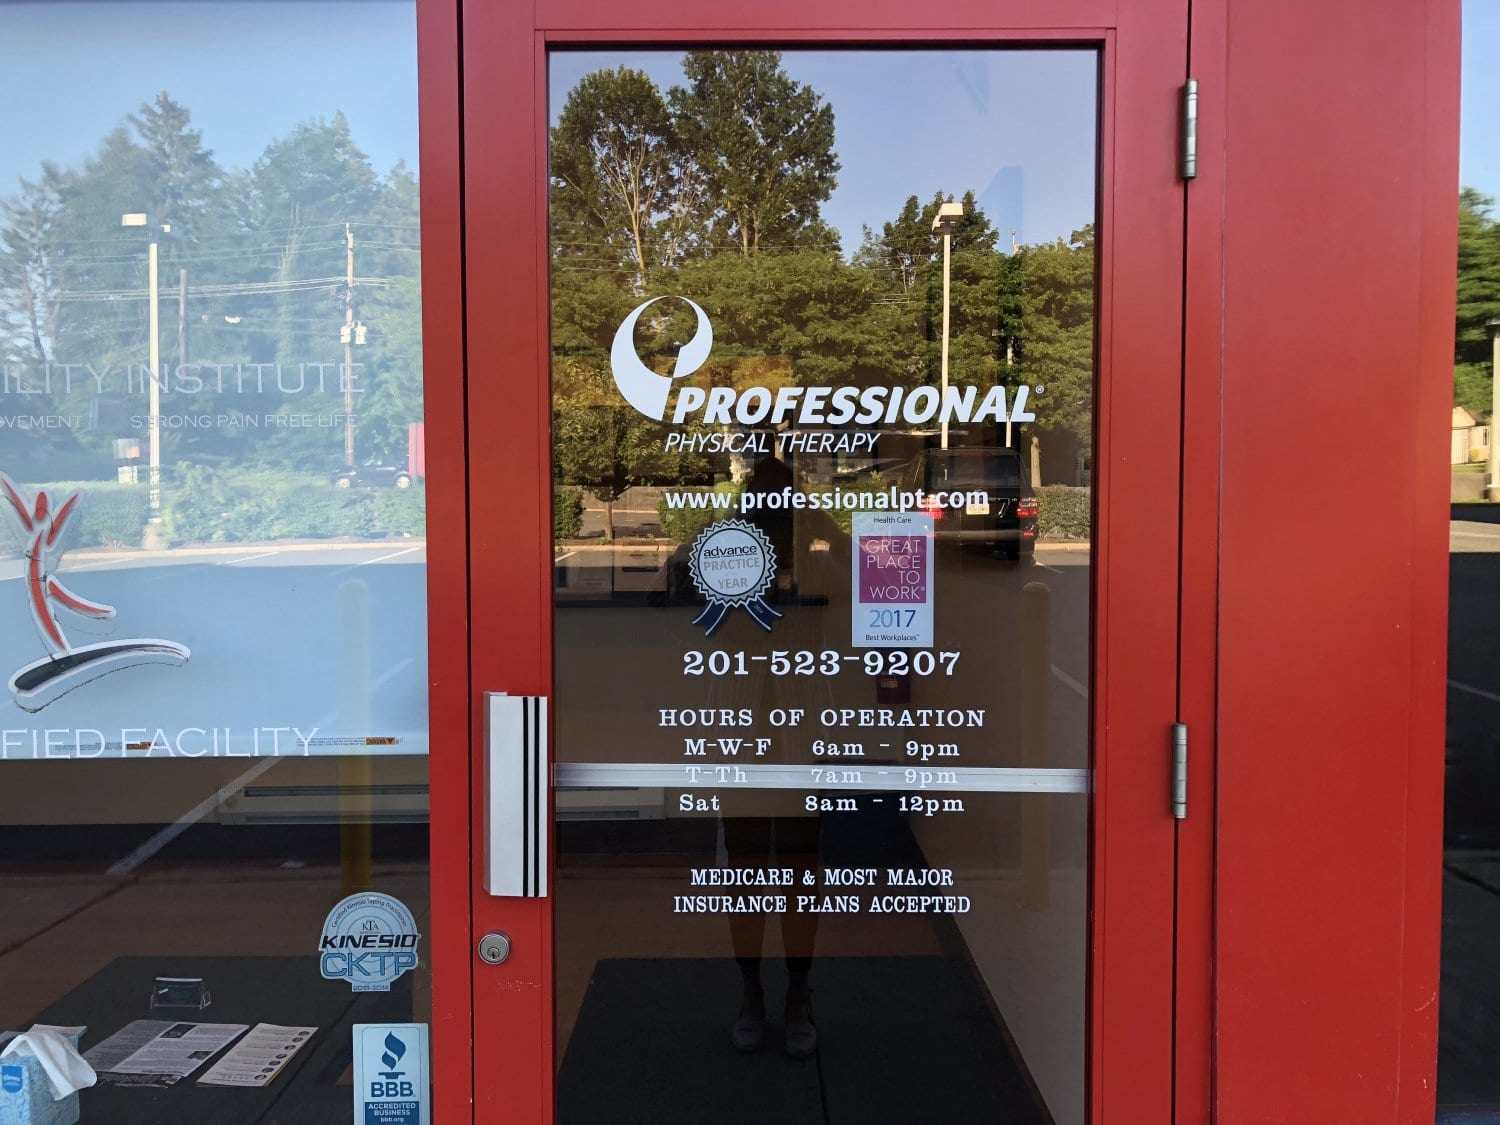 Here is a shot of the front door to our physical therapy clinic in River Edge, New Jersey.